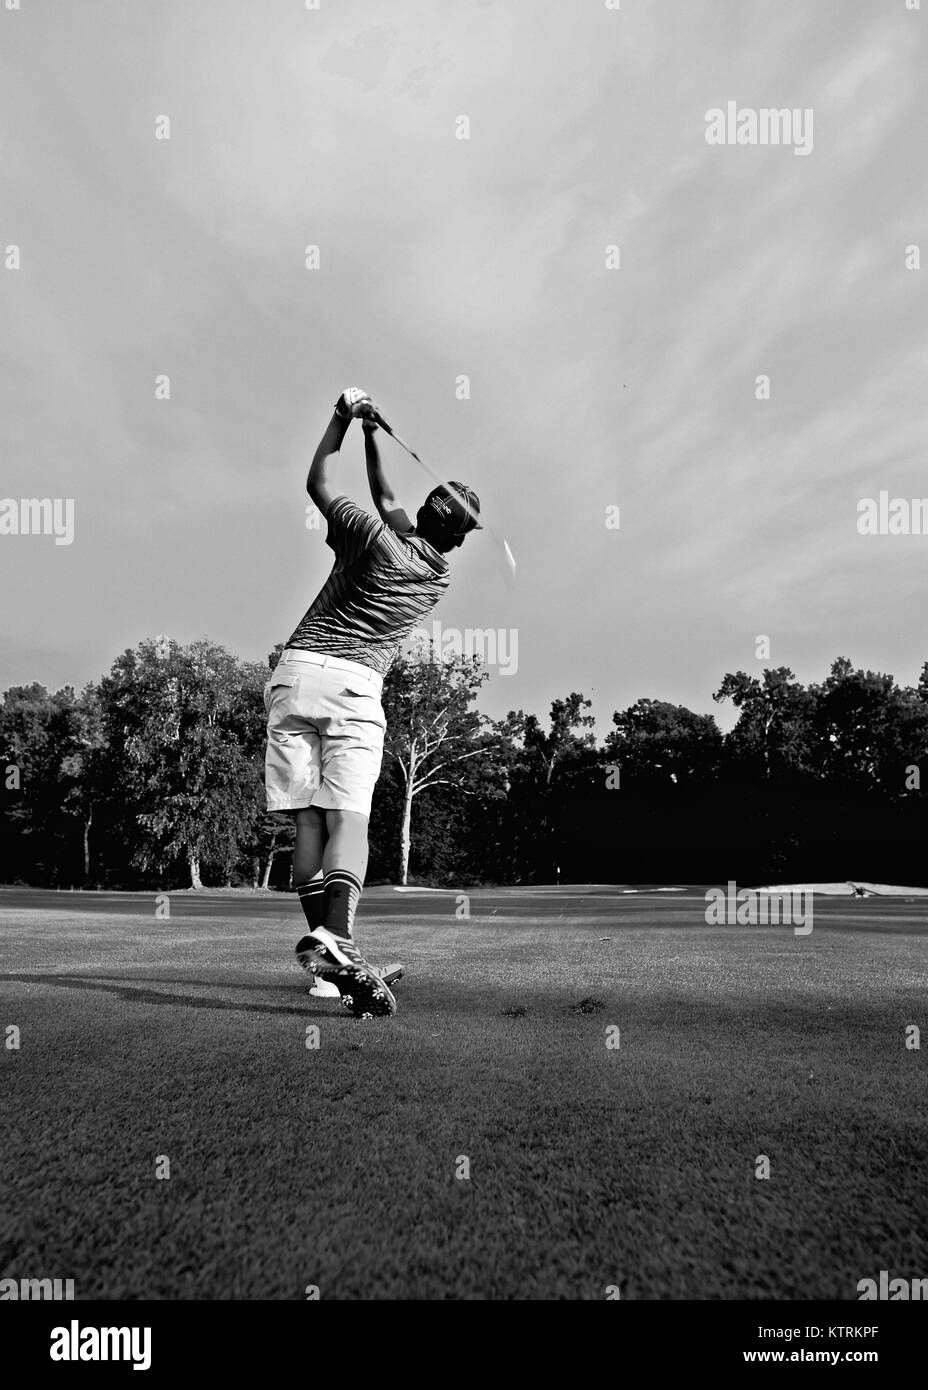 My son the Golfger. - Stock Image